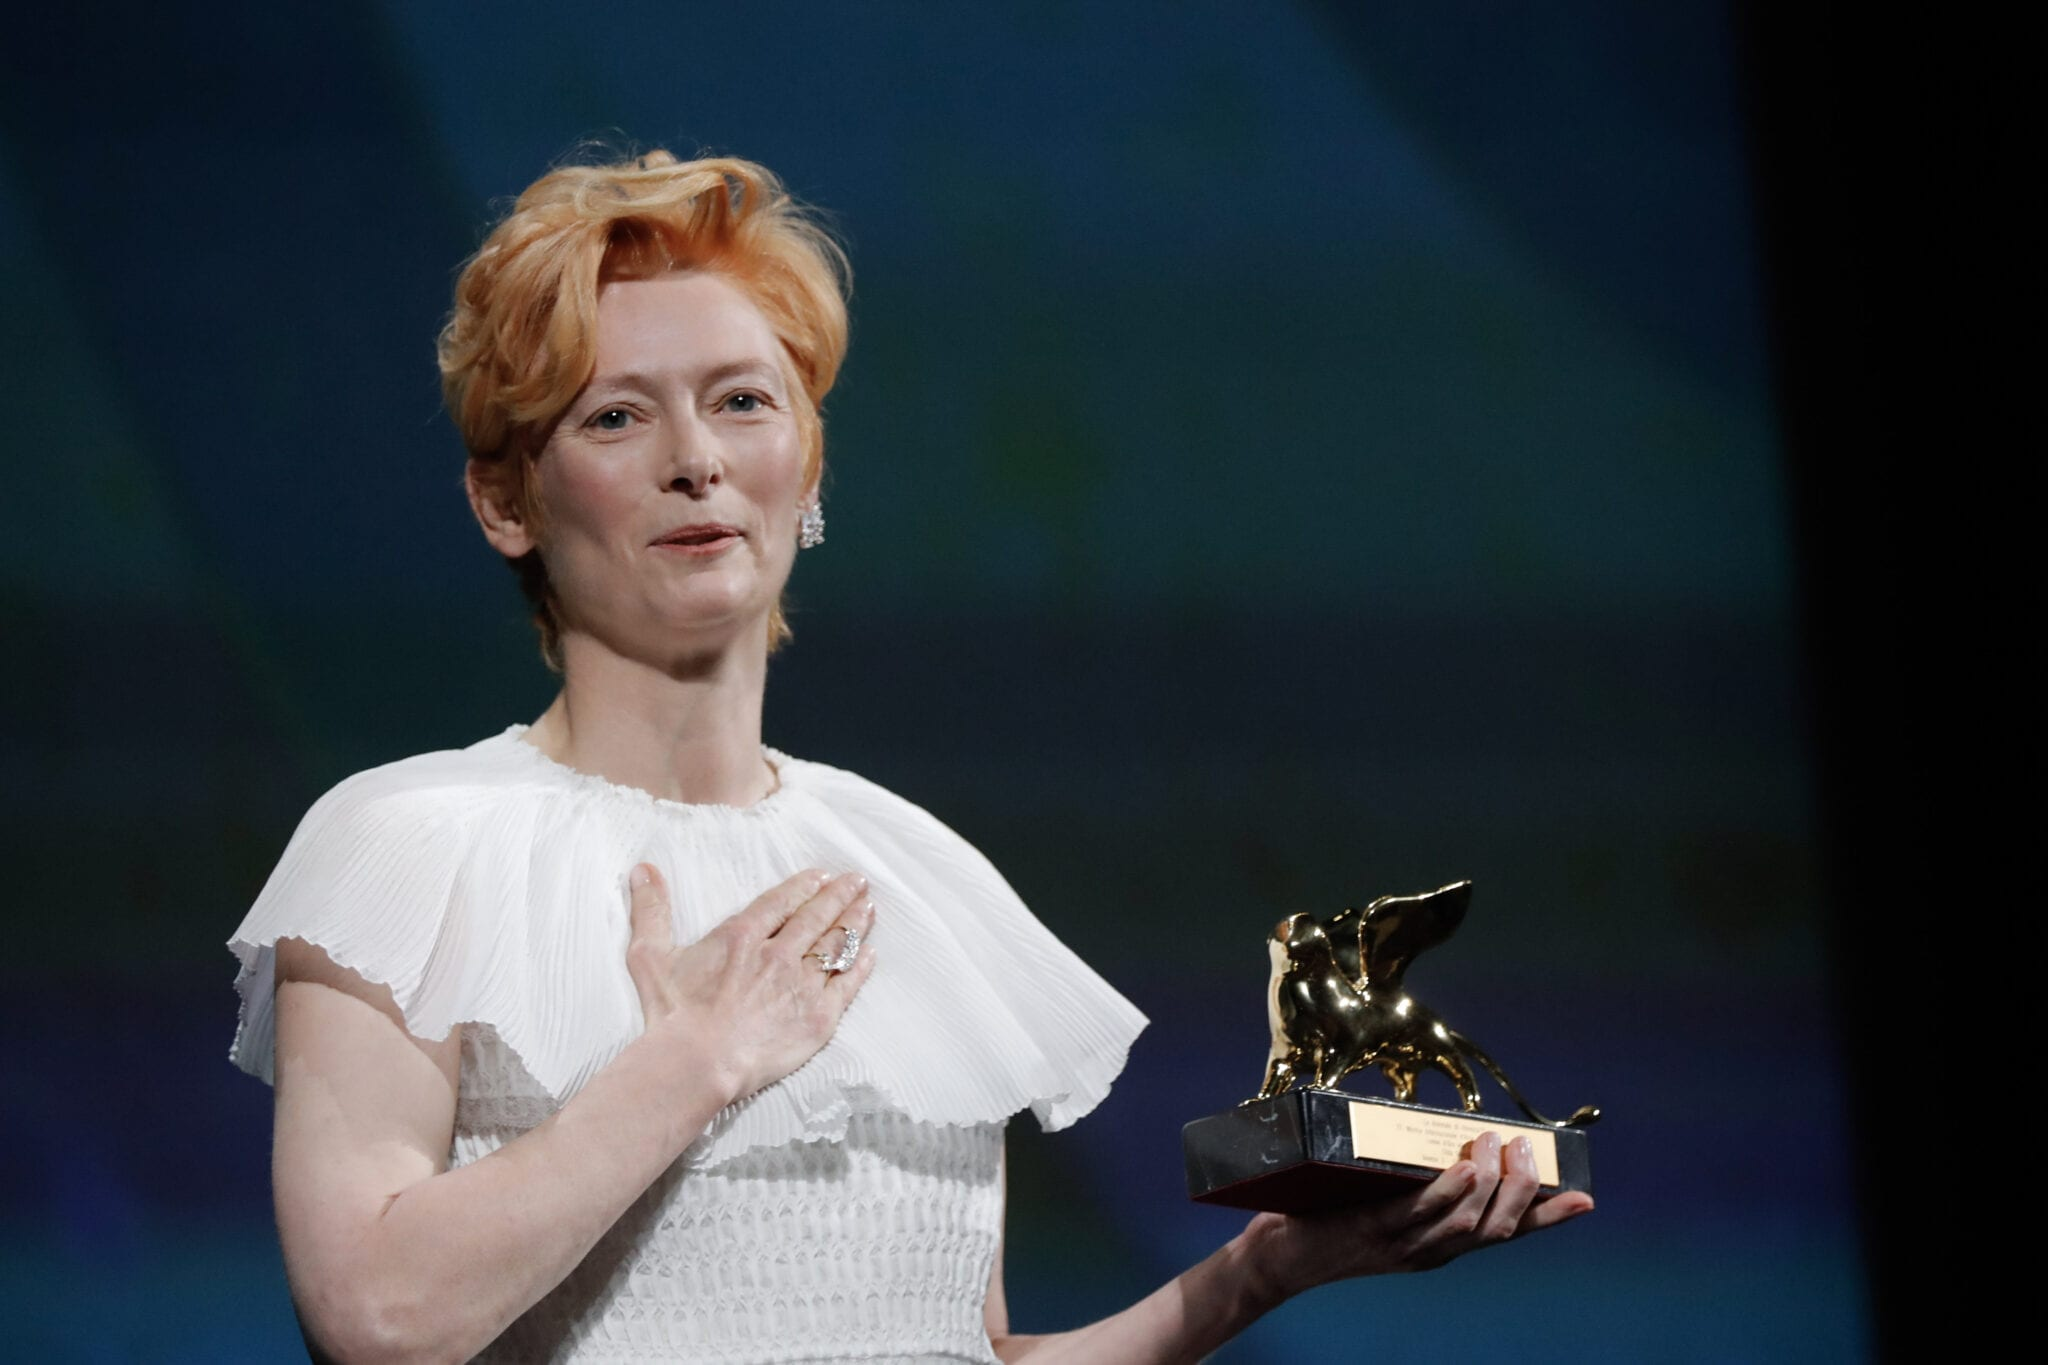 Swinton wears a white dress and holds the Golden Lion statue in one hand with her other hand pressed to her heart.